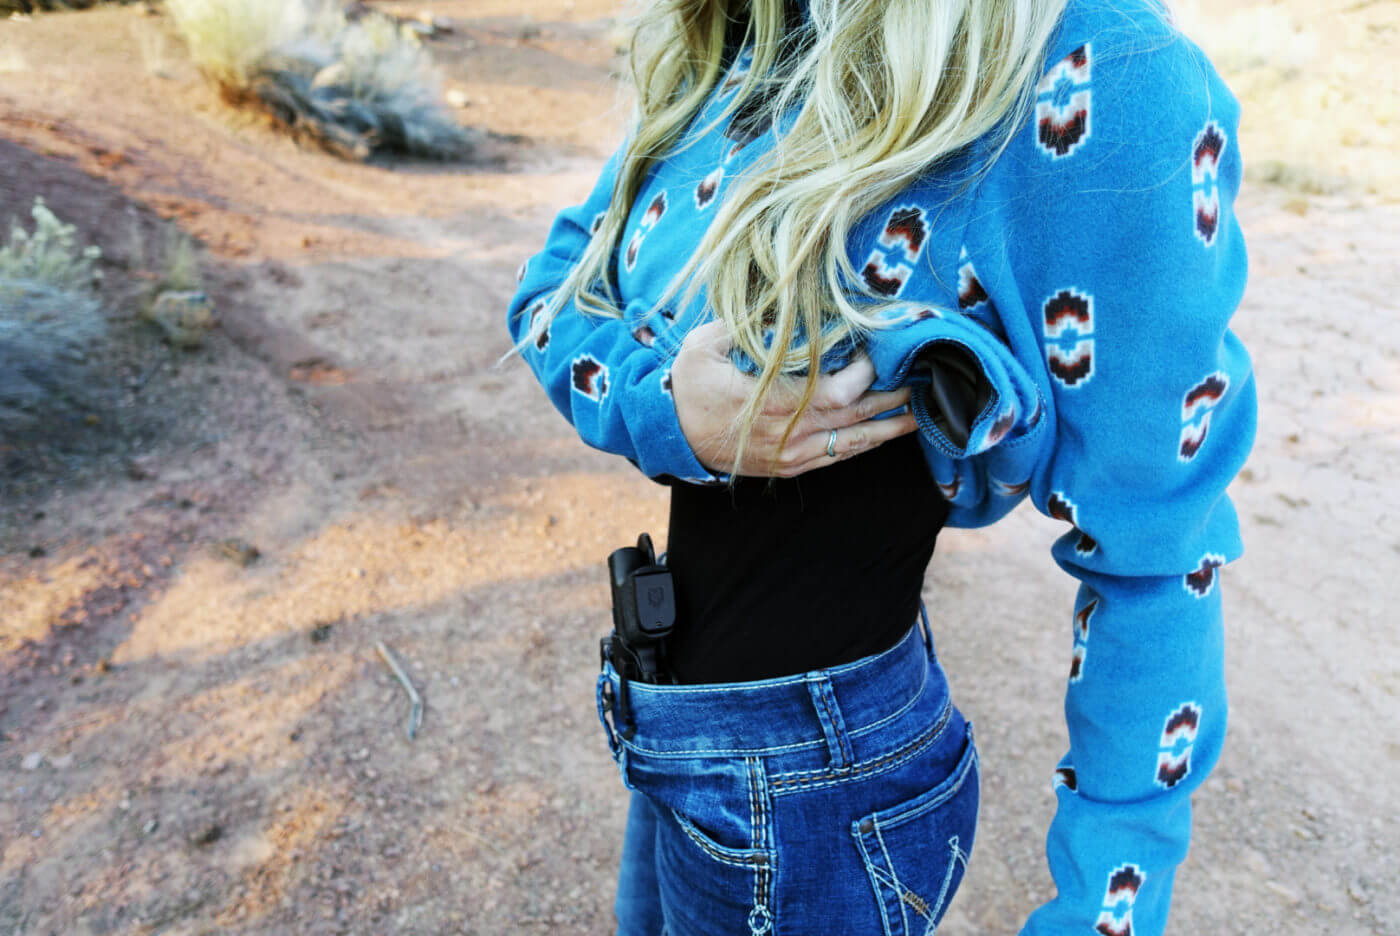 The Crossbreed Reckoning is a perfect method for women to appendix carry a Hellcat